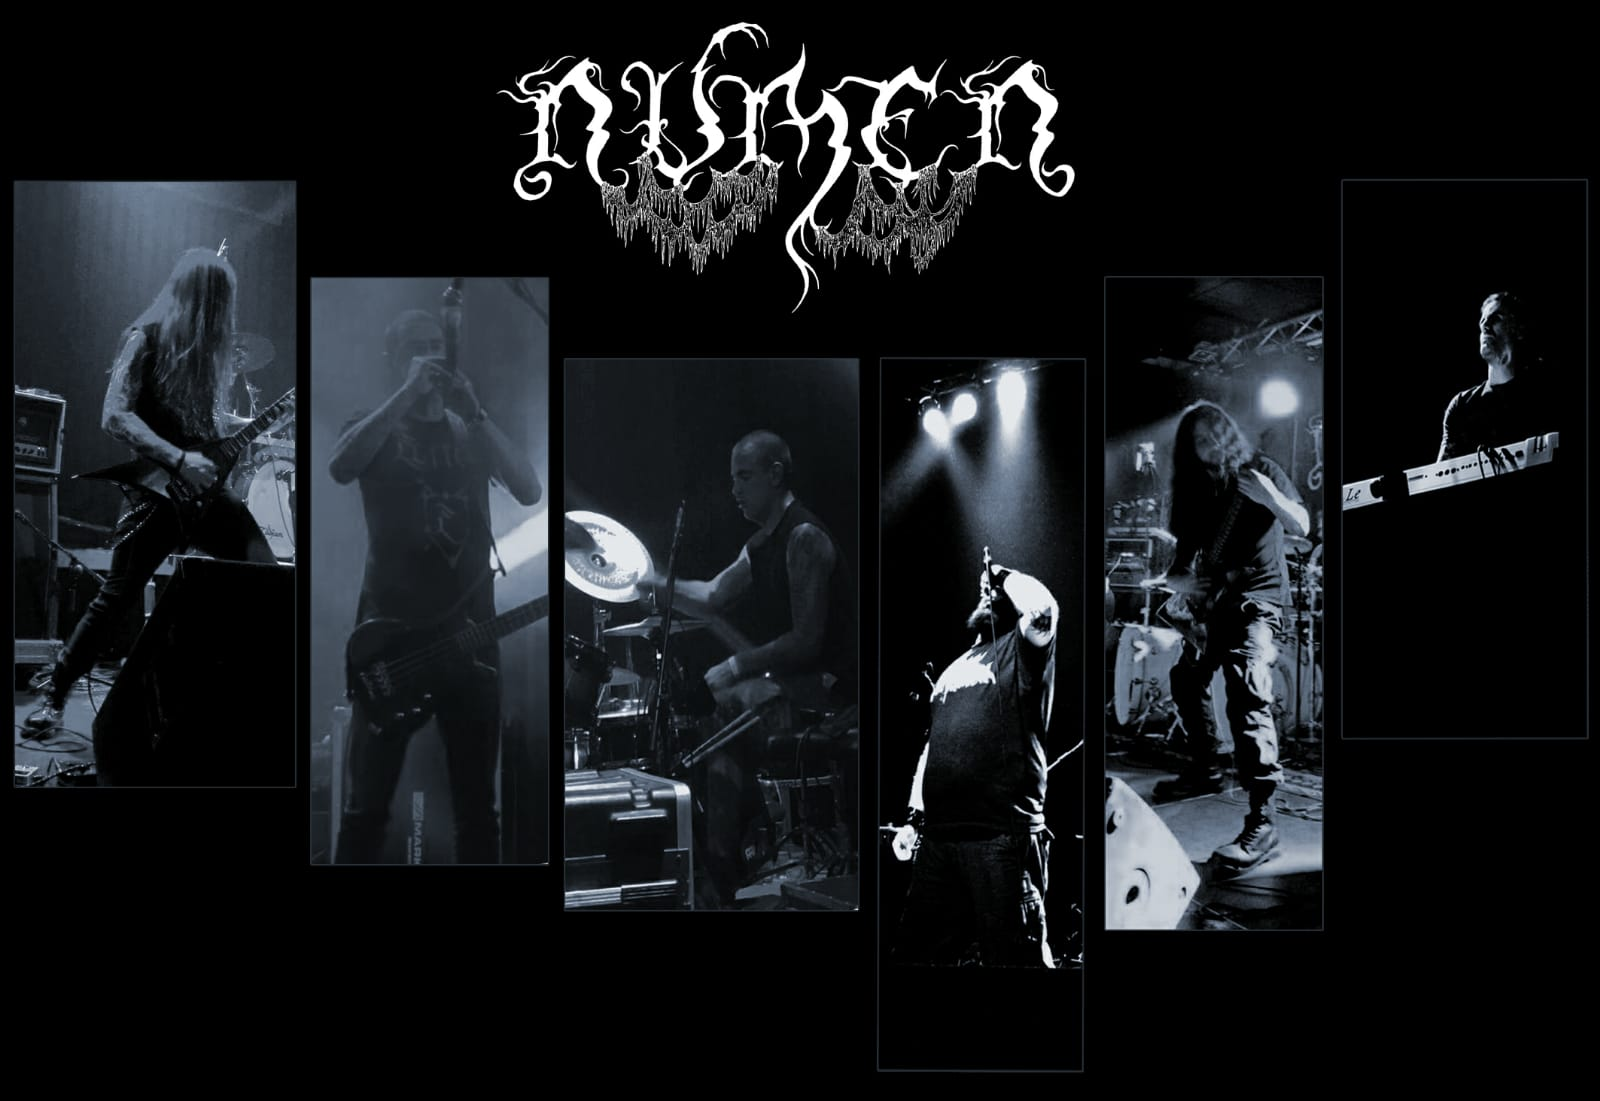 Numen (Esp) members (Click to see larger picture)